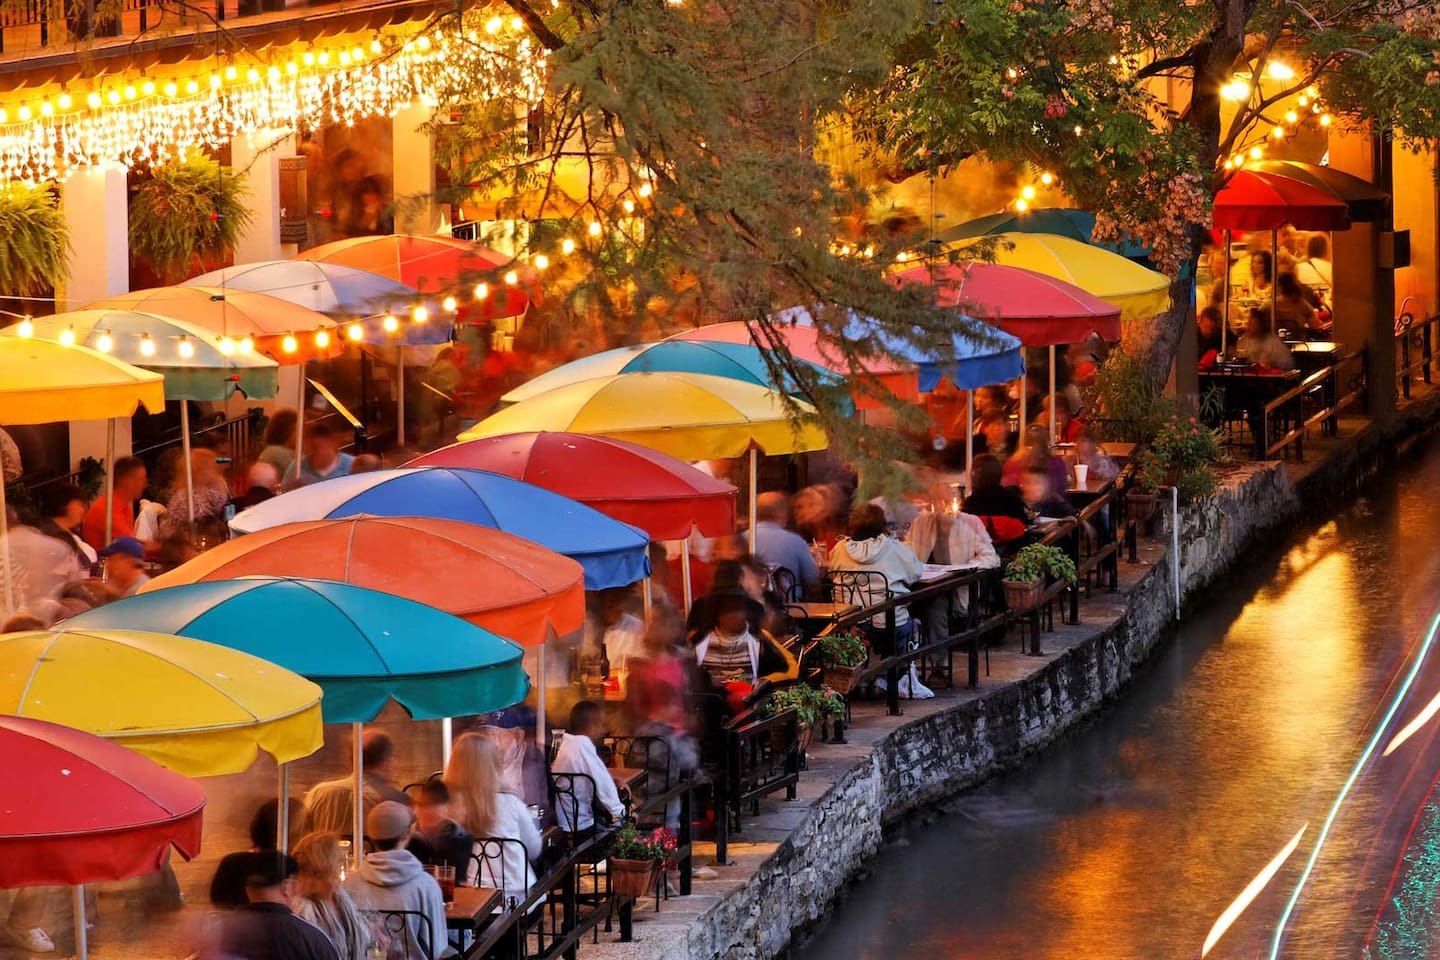 Fiesta on San Antonio River & throughout city